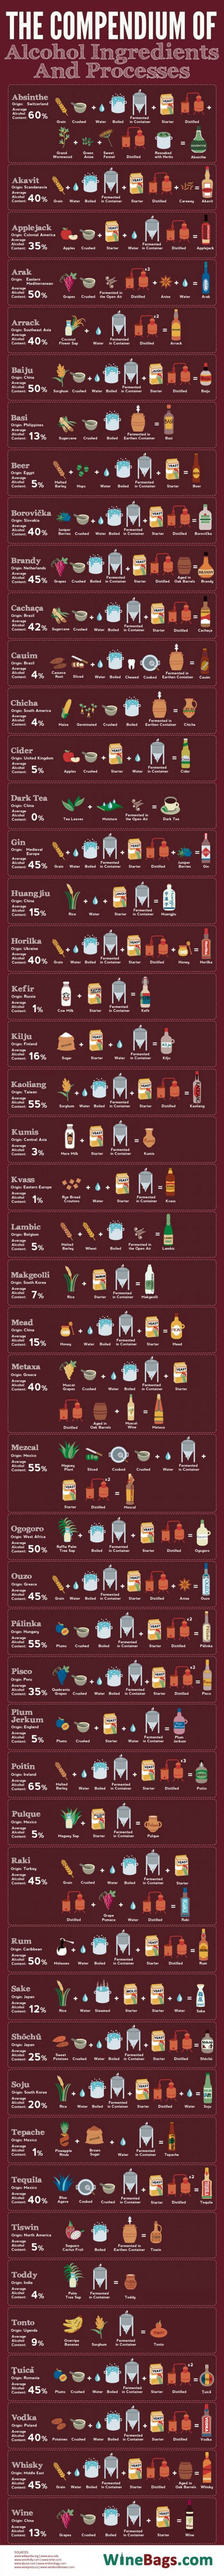 These Are The Ingredients That Make Up Your Favorite Alcoholic Drinks